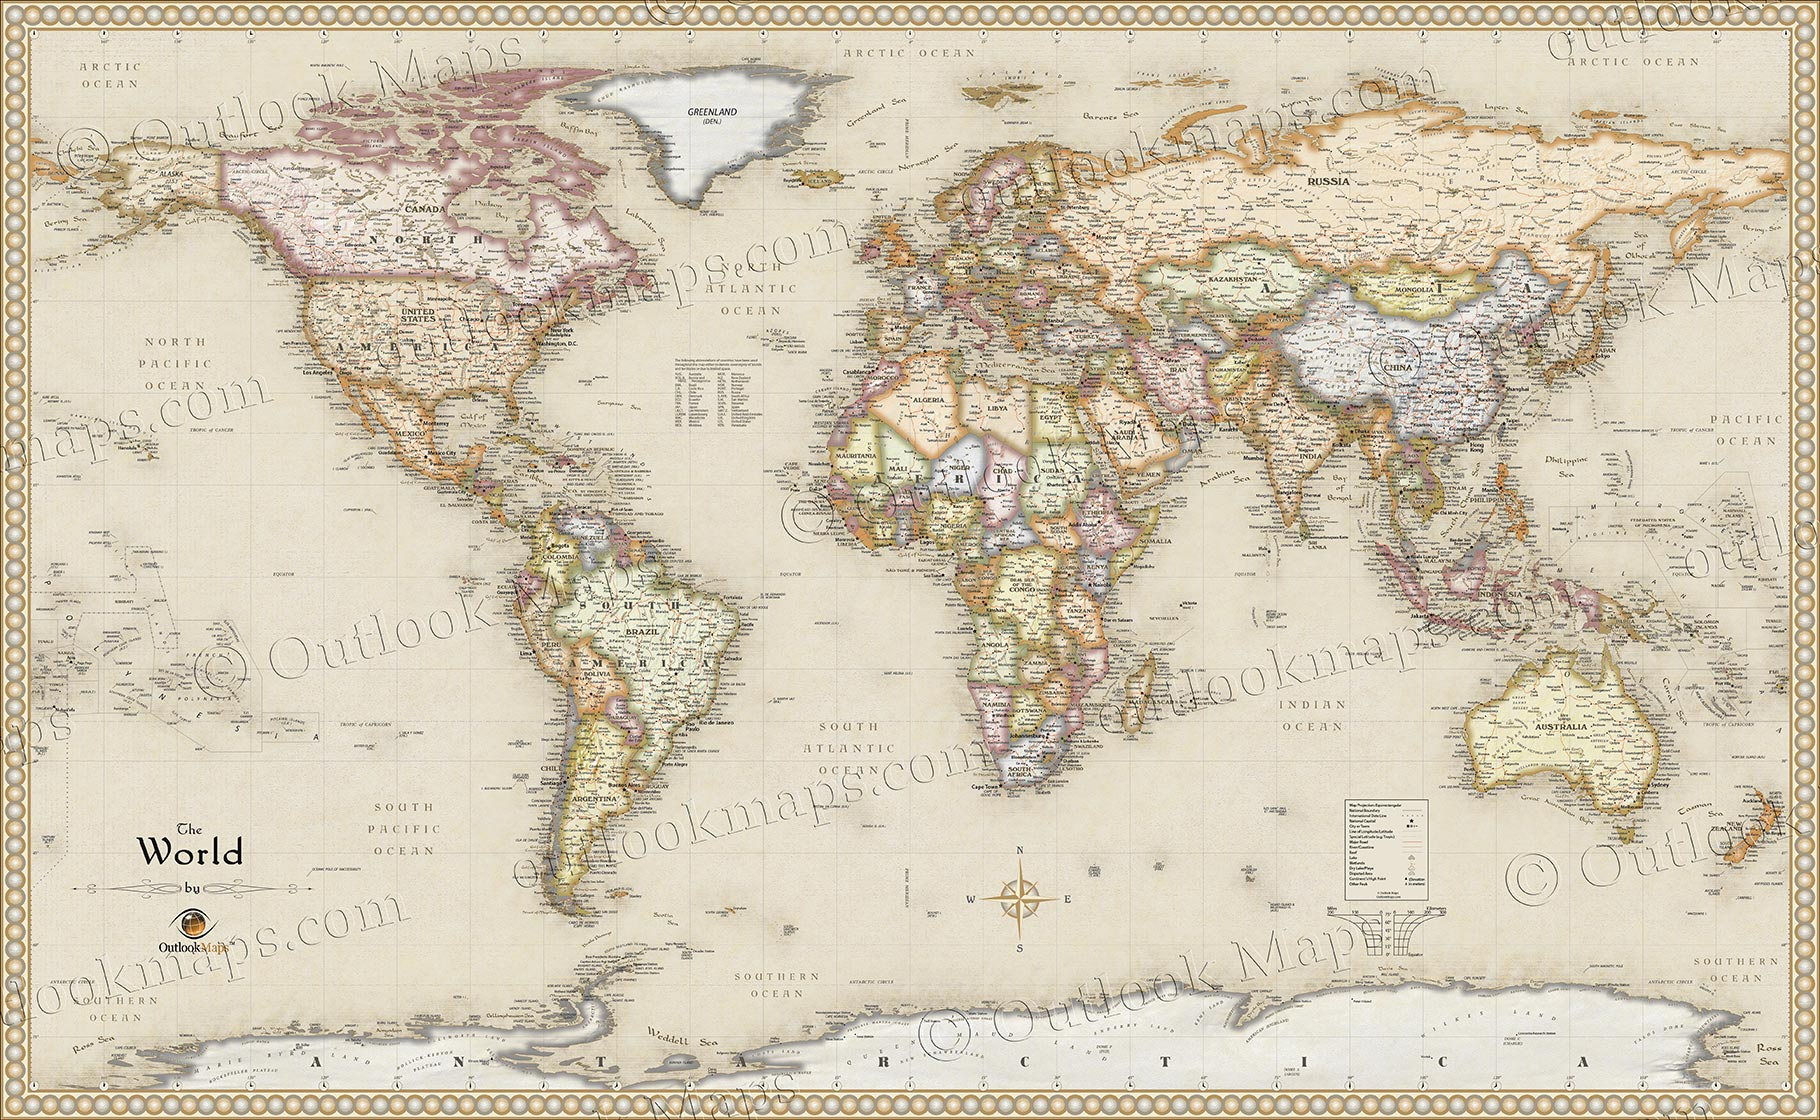 Vintage World Map World Antique Style Map | Current Map in Old Vintage Map Style Vintage World Map